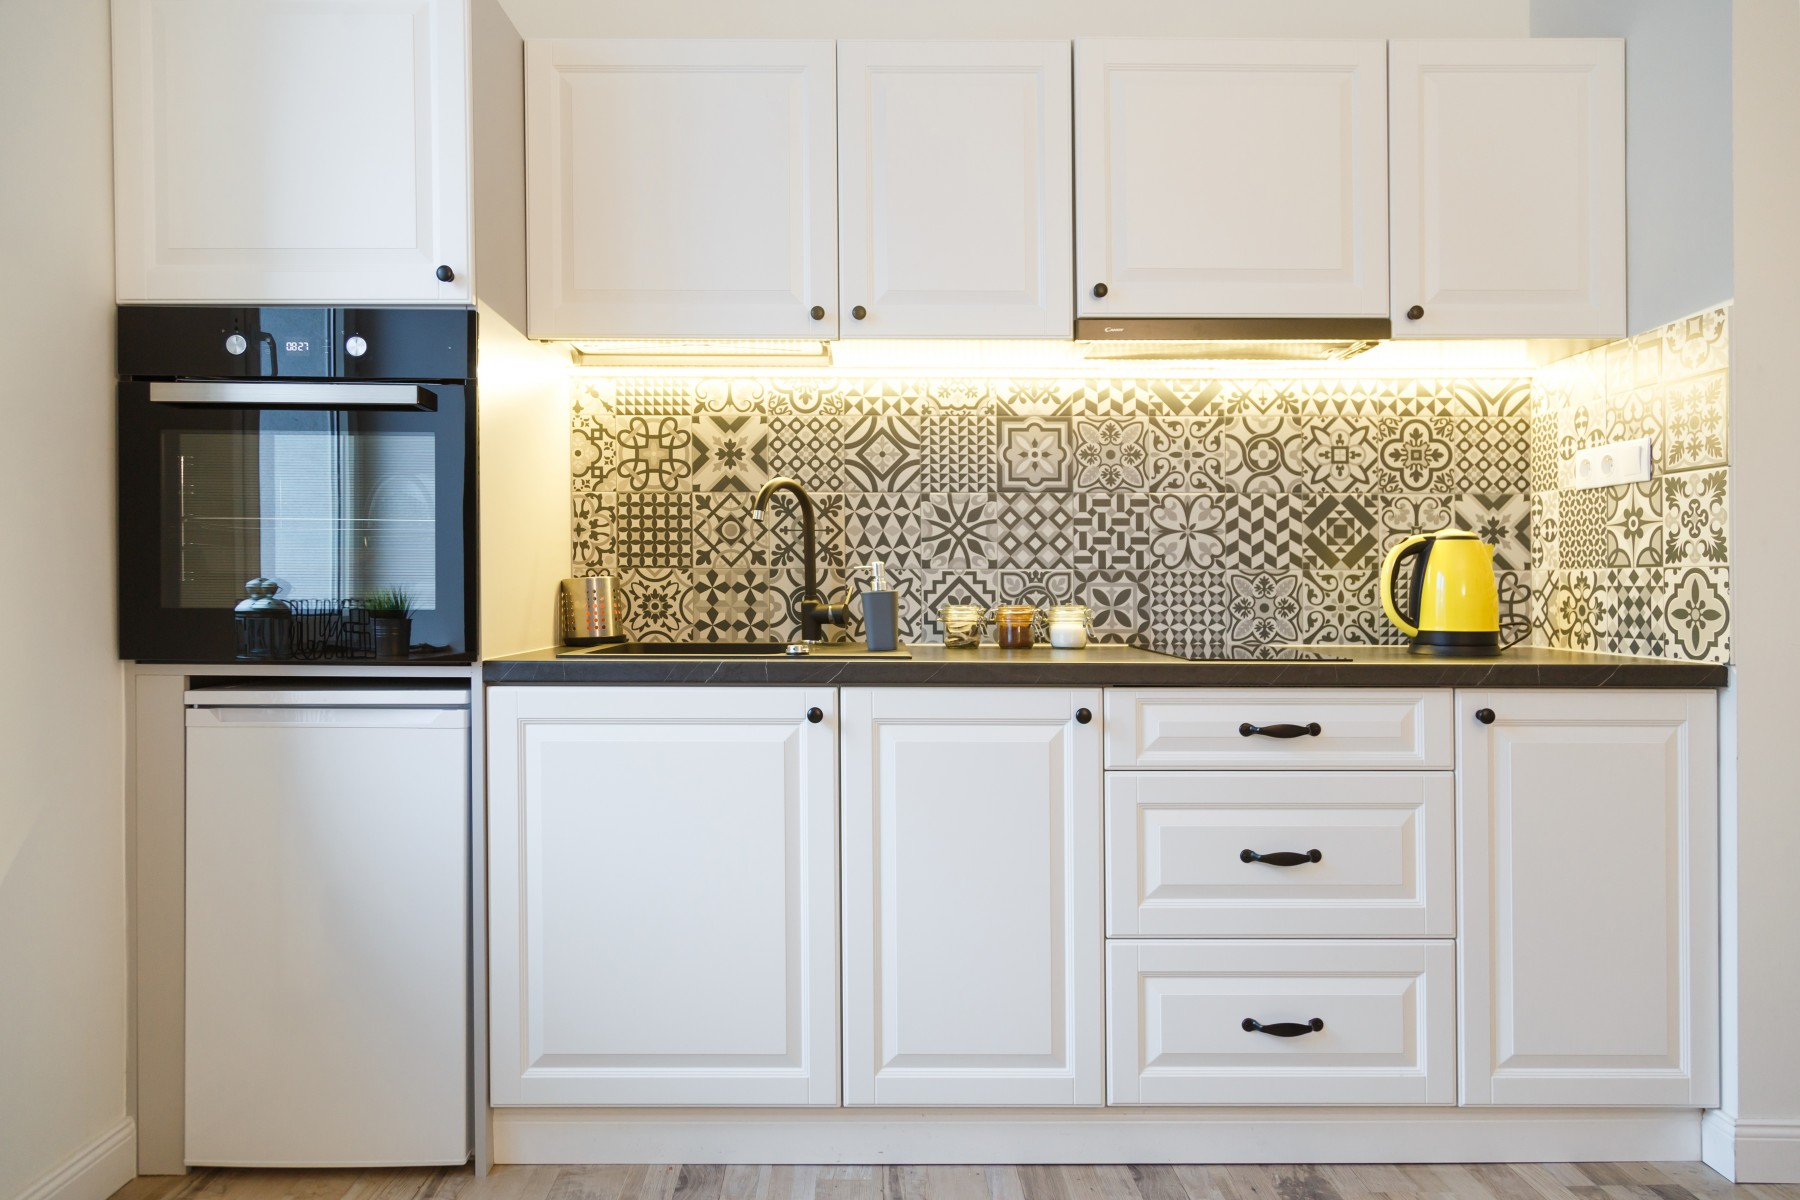 Under Cabinet Lighting in Your Kitchen - Tim Kyle Electric